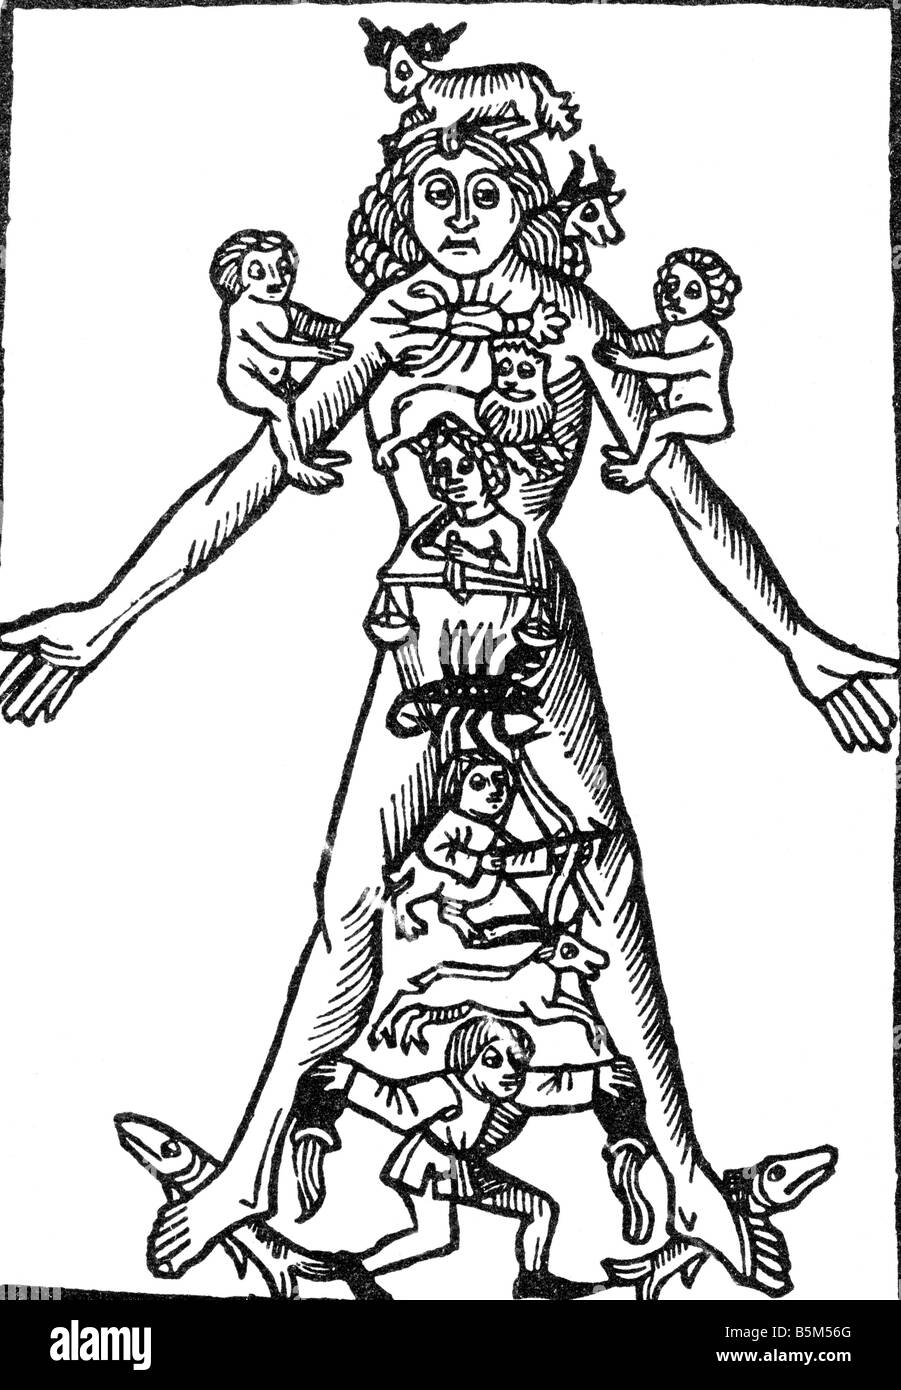 astrology, zodiac man, woodcut, circa 1600, Additional-Rights-Clearances-NA - Stock Image